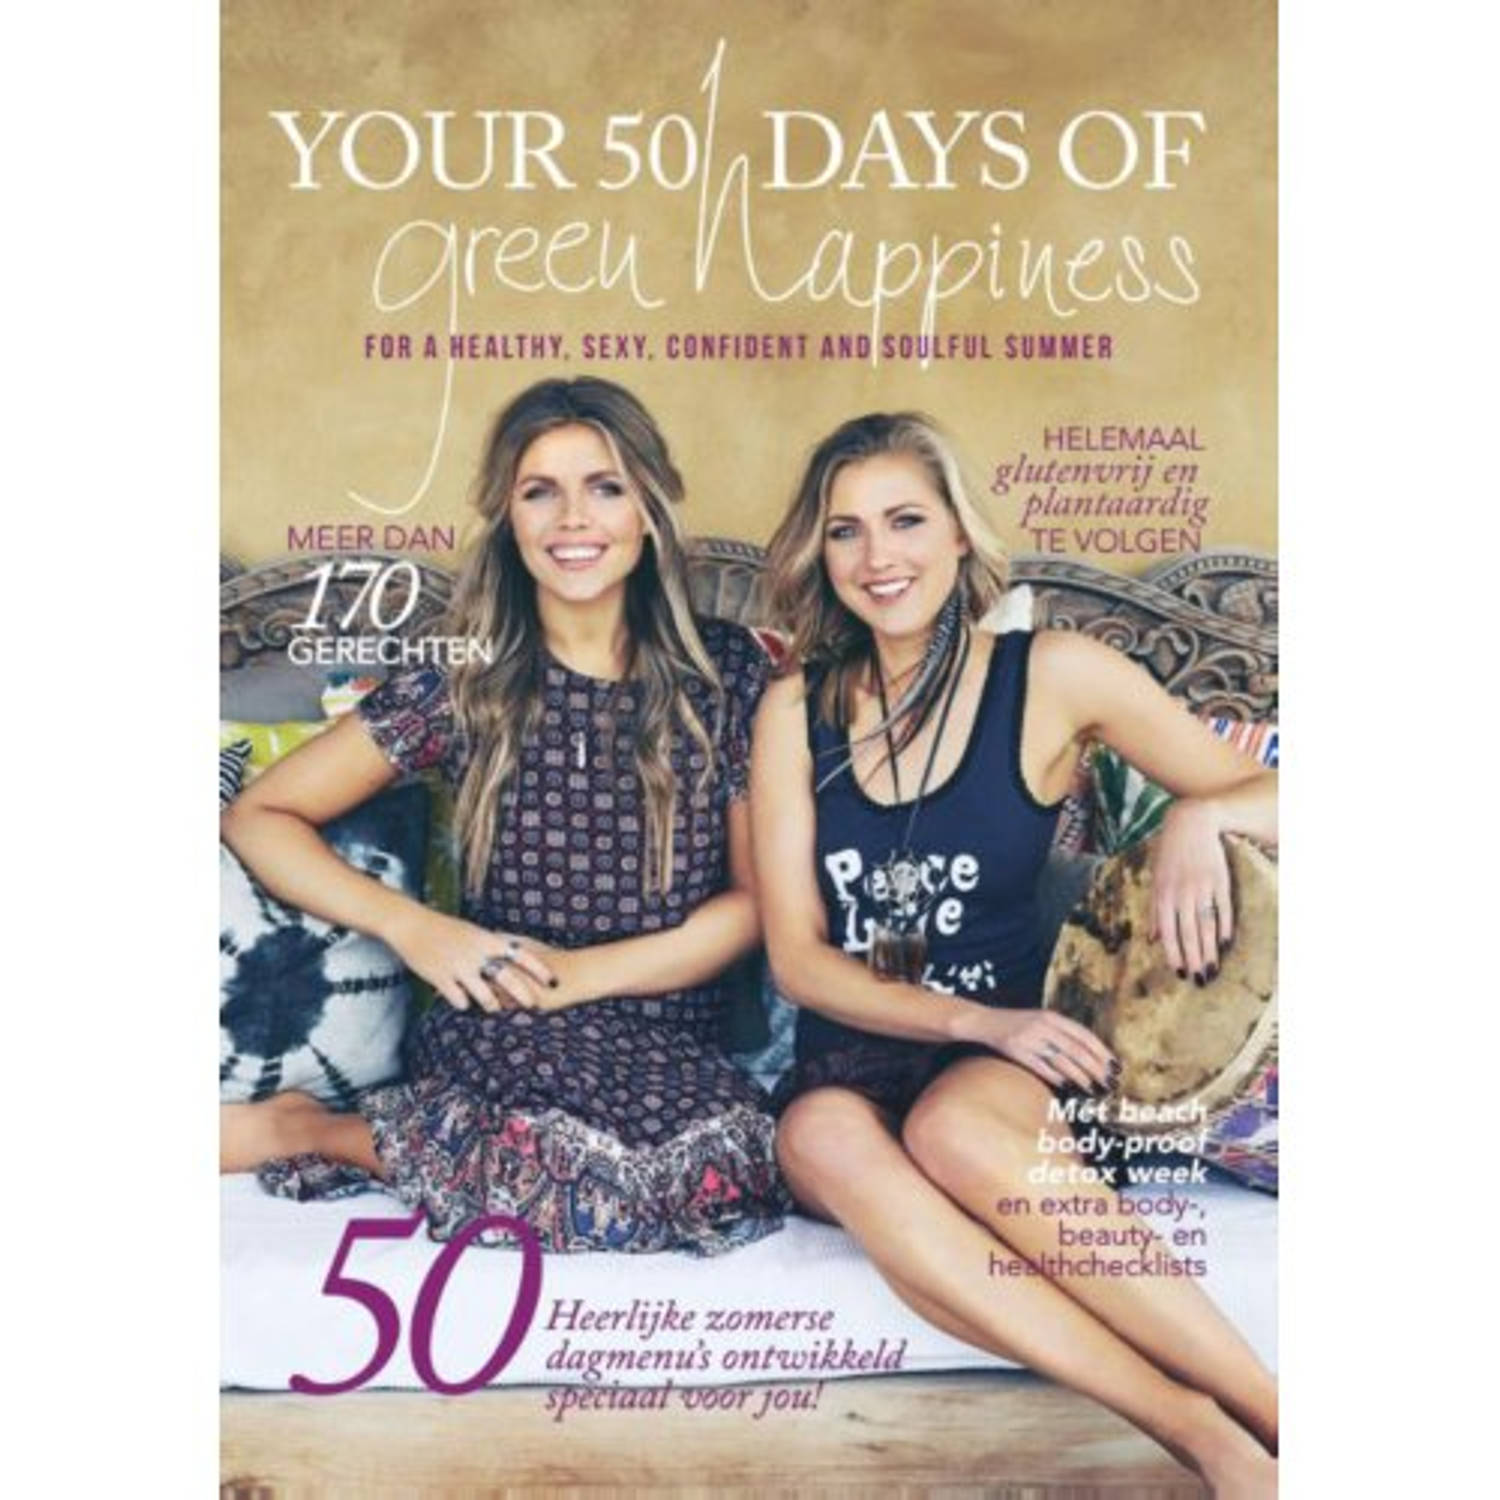 Korting Your 50 Days Of Green Happiness Your 50 Days Of